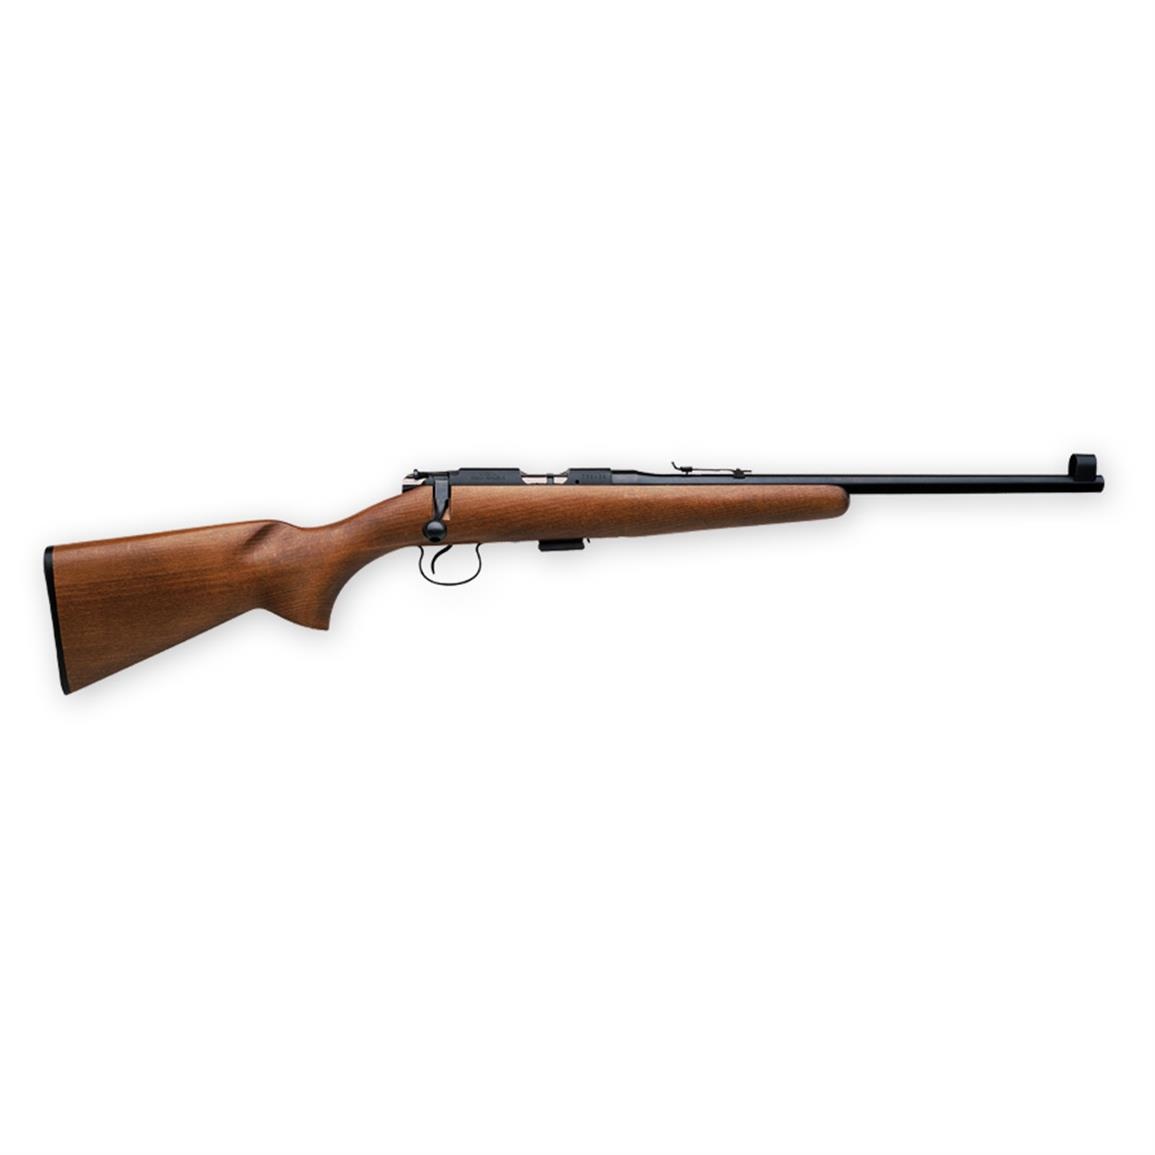 "Youth CZ-USA 452 Scout ZKM, Bolt Action, .22LR, Rimfire, 16.2"" Barrel, 1 Round"